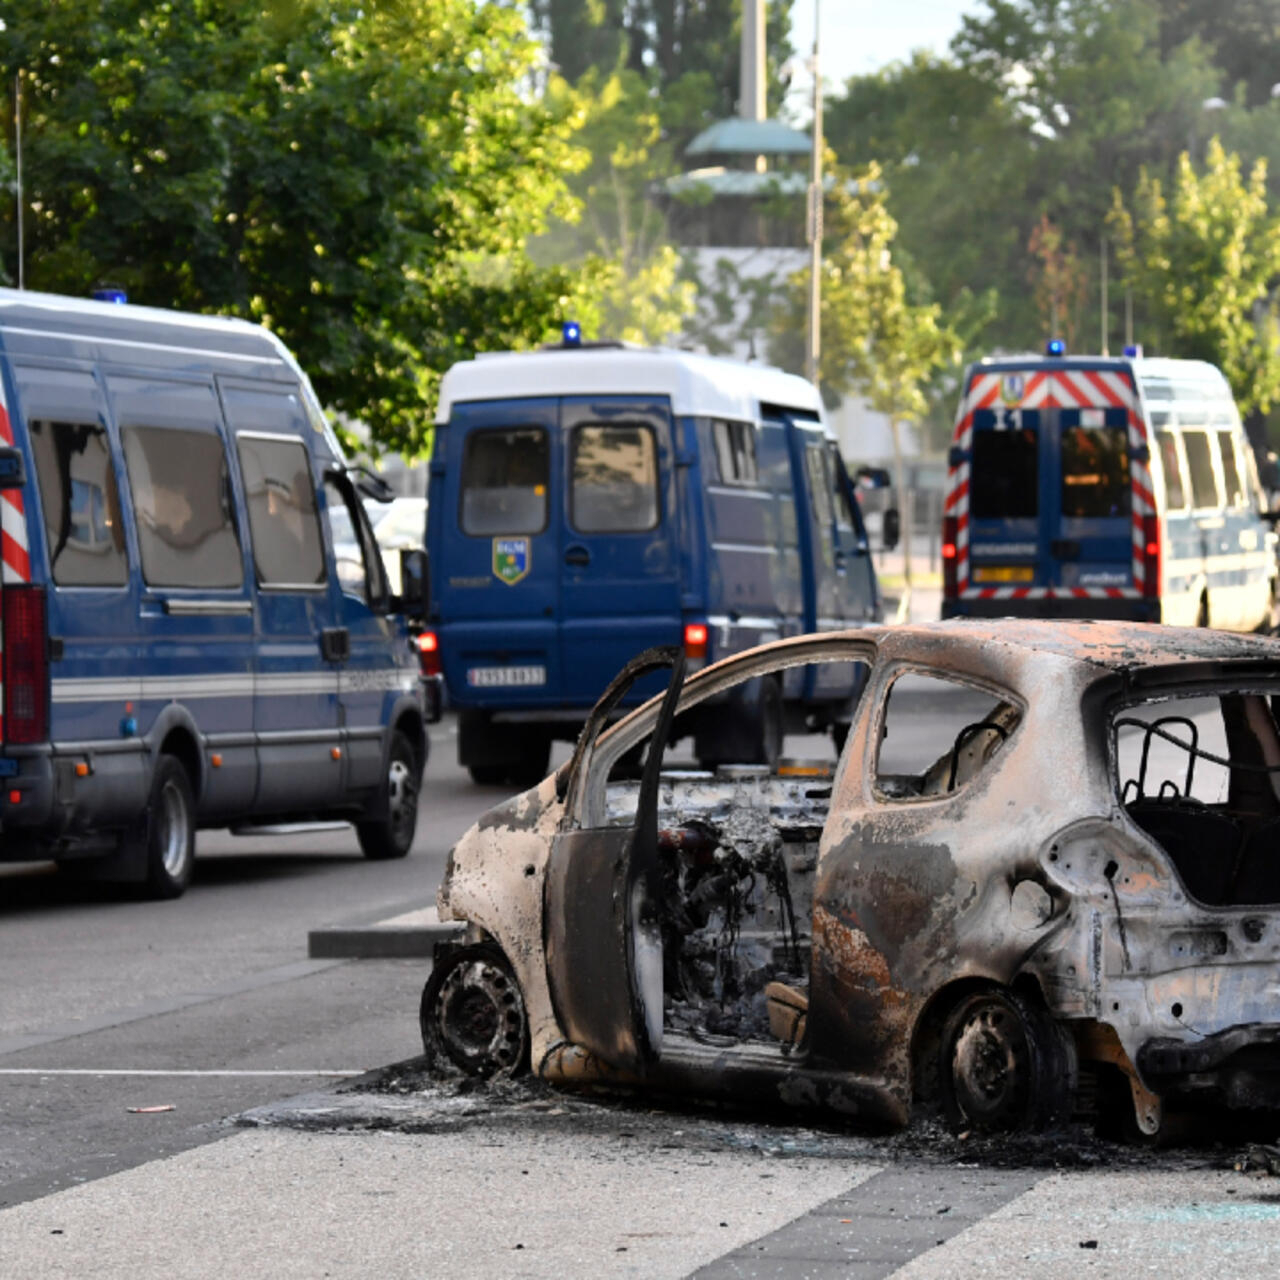 French City Of Dijon Rocked By Unrest Blamed On Chechens Seeking Revenge